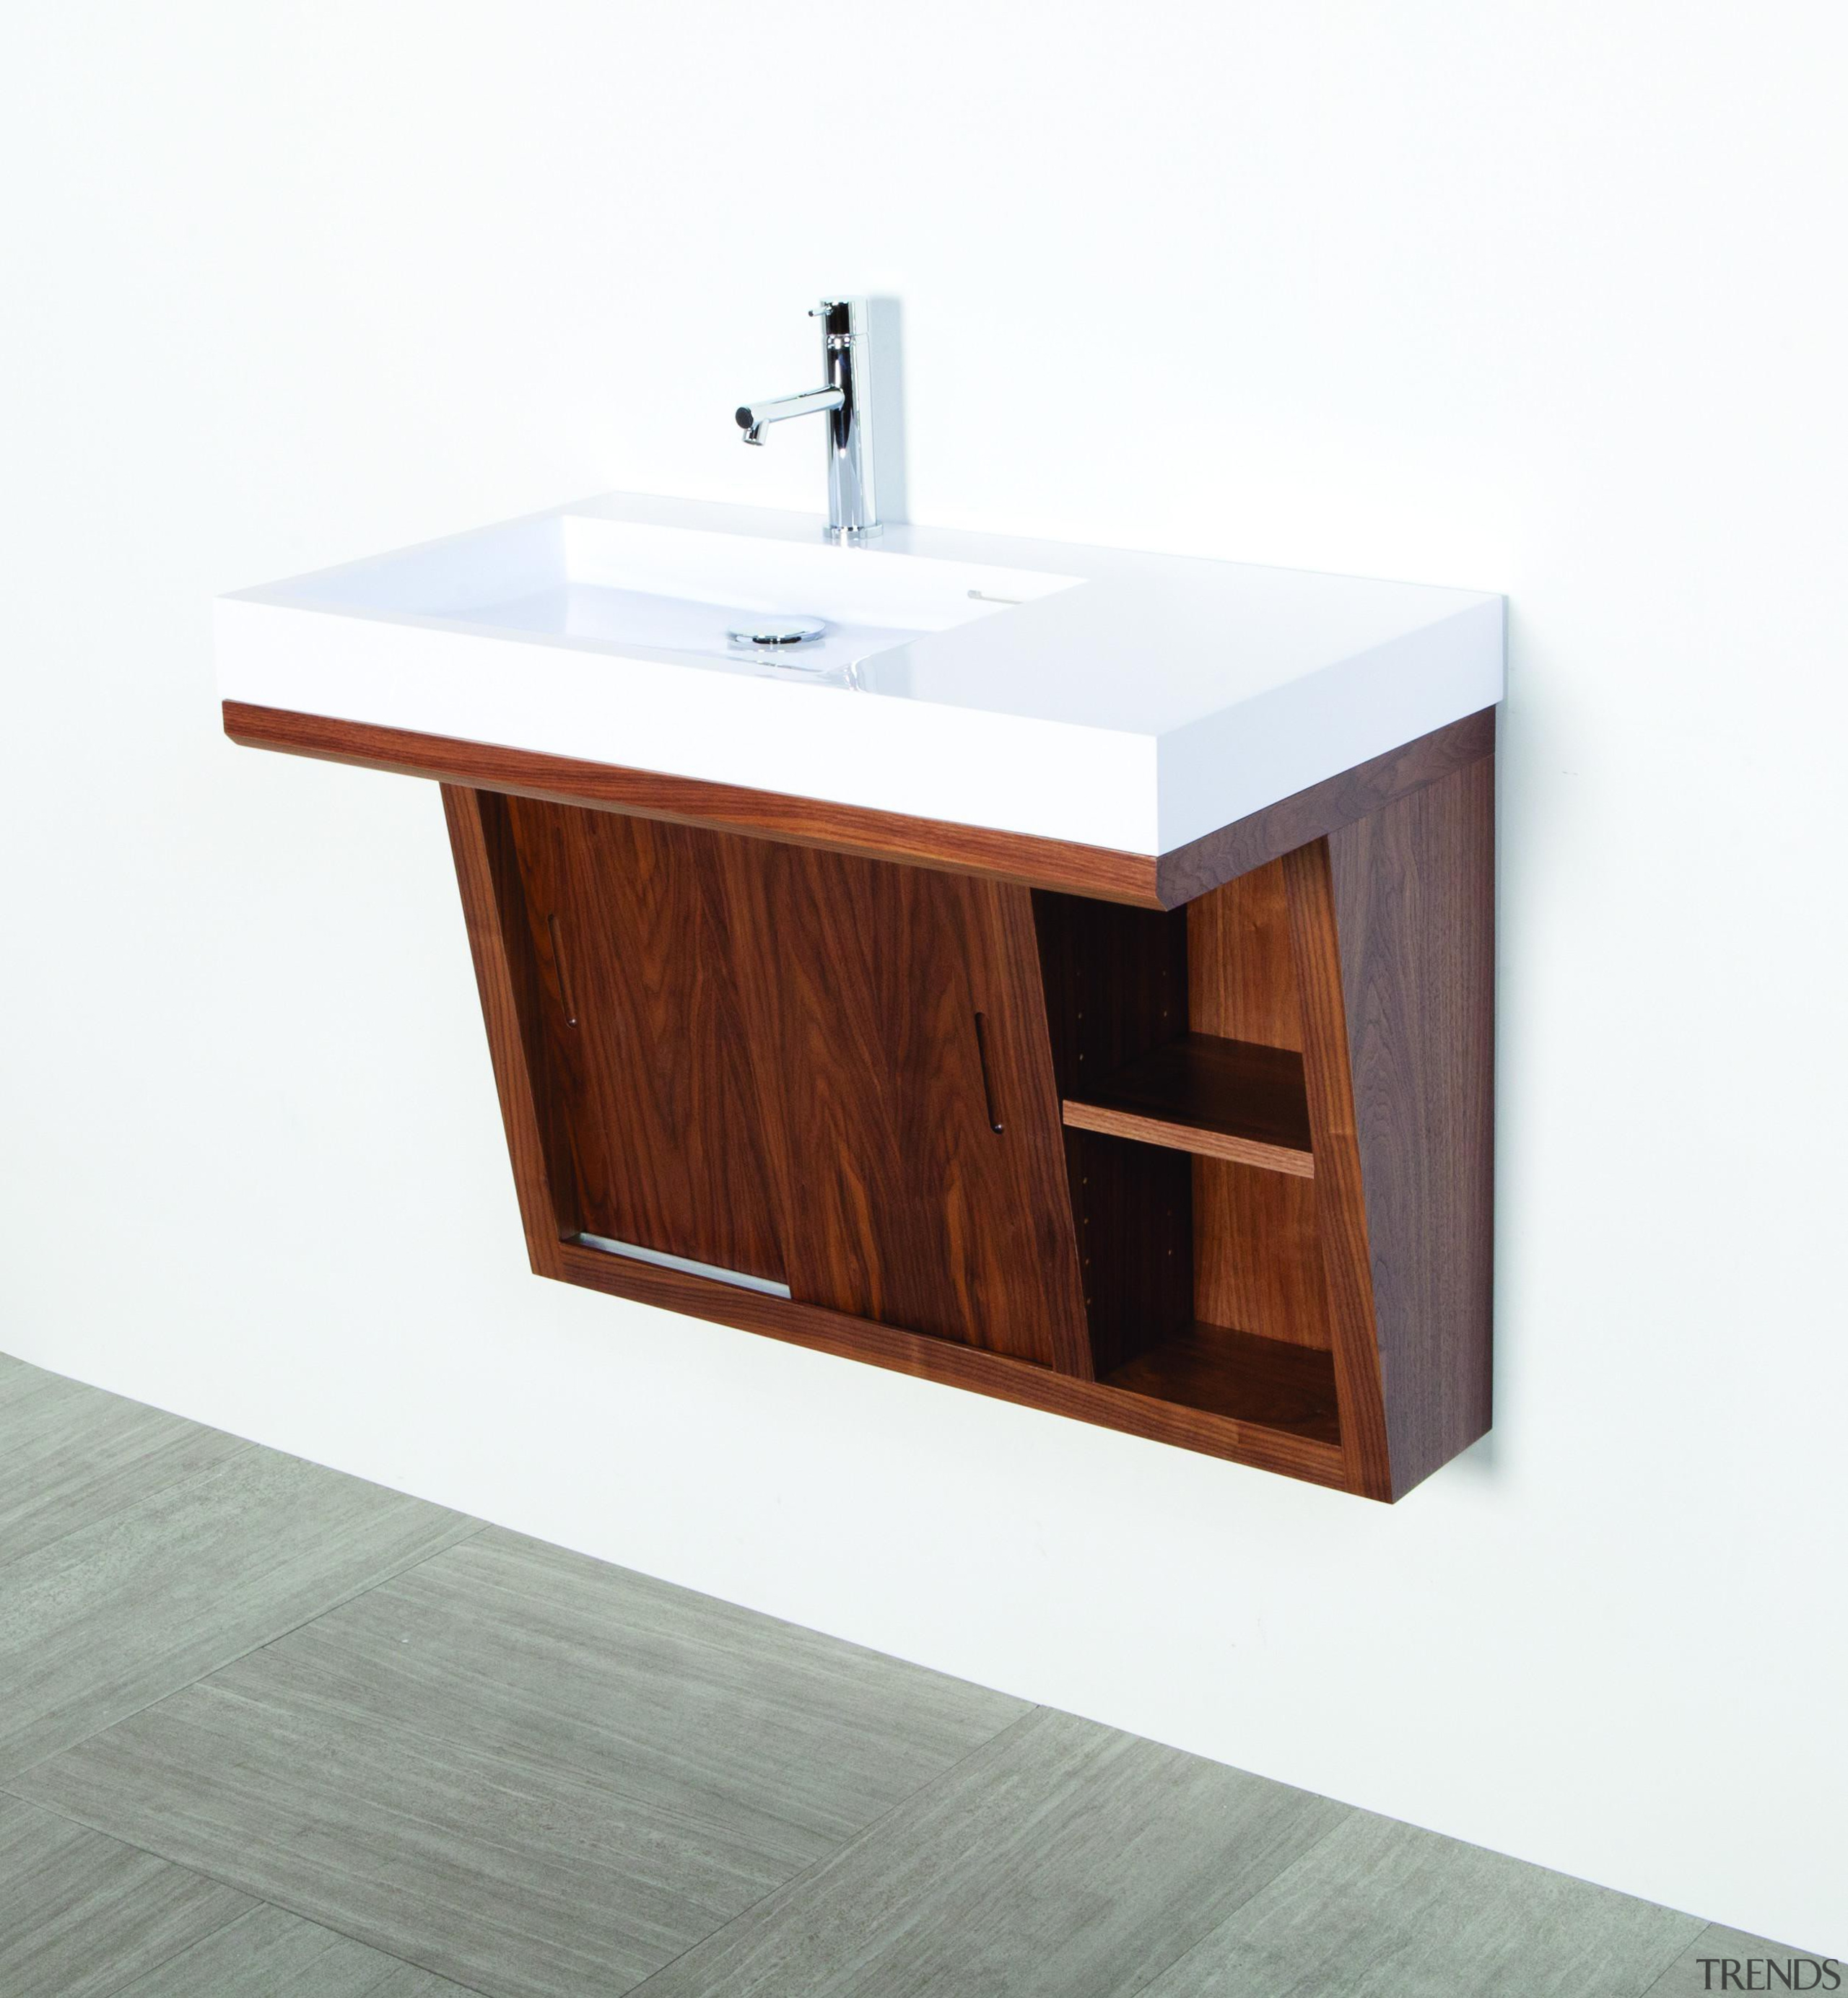 Wall-mounted undercounter vanity with two sliding doors, two angle, bathroom accessory, bathroom cabinet, bathroom sink, furniture, plumbing fixture, product, product design, sink, white